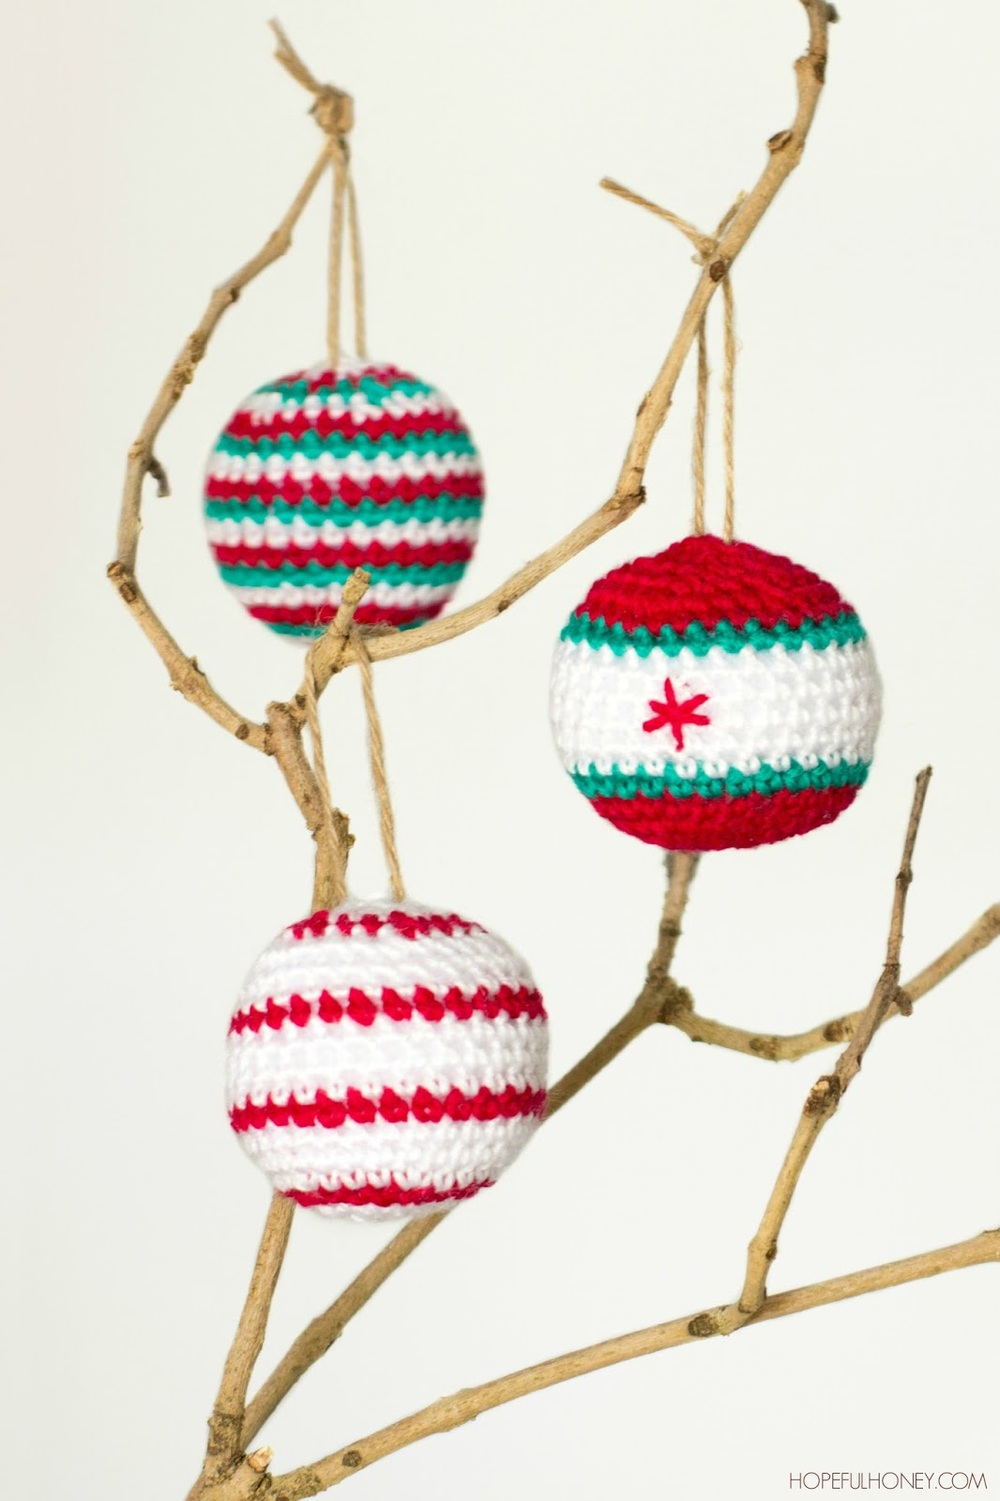 Crochet Bauble Christmas Ornaments | FaveCrafts.com